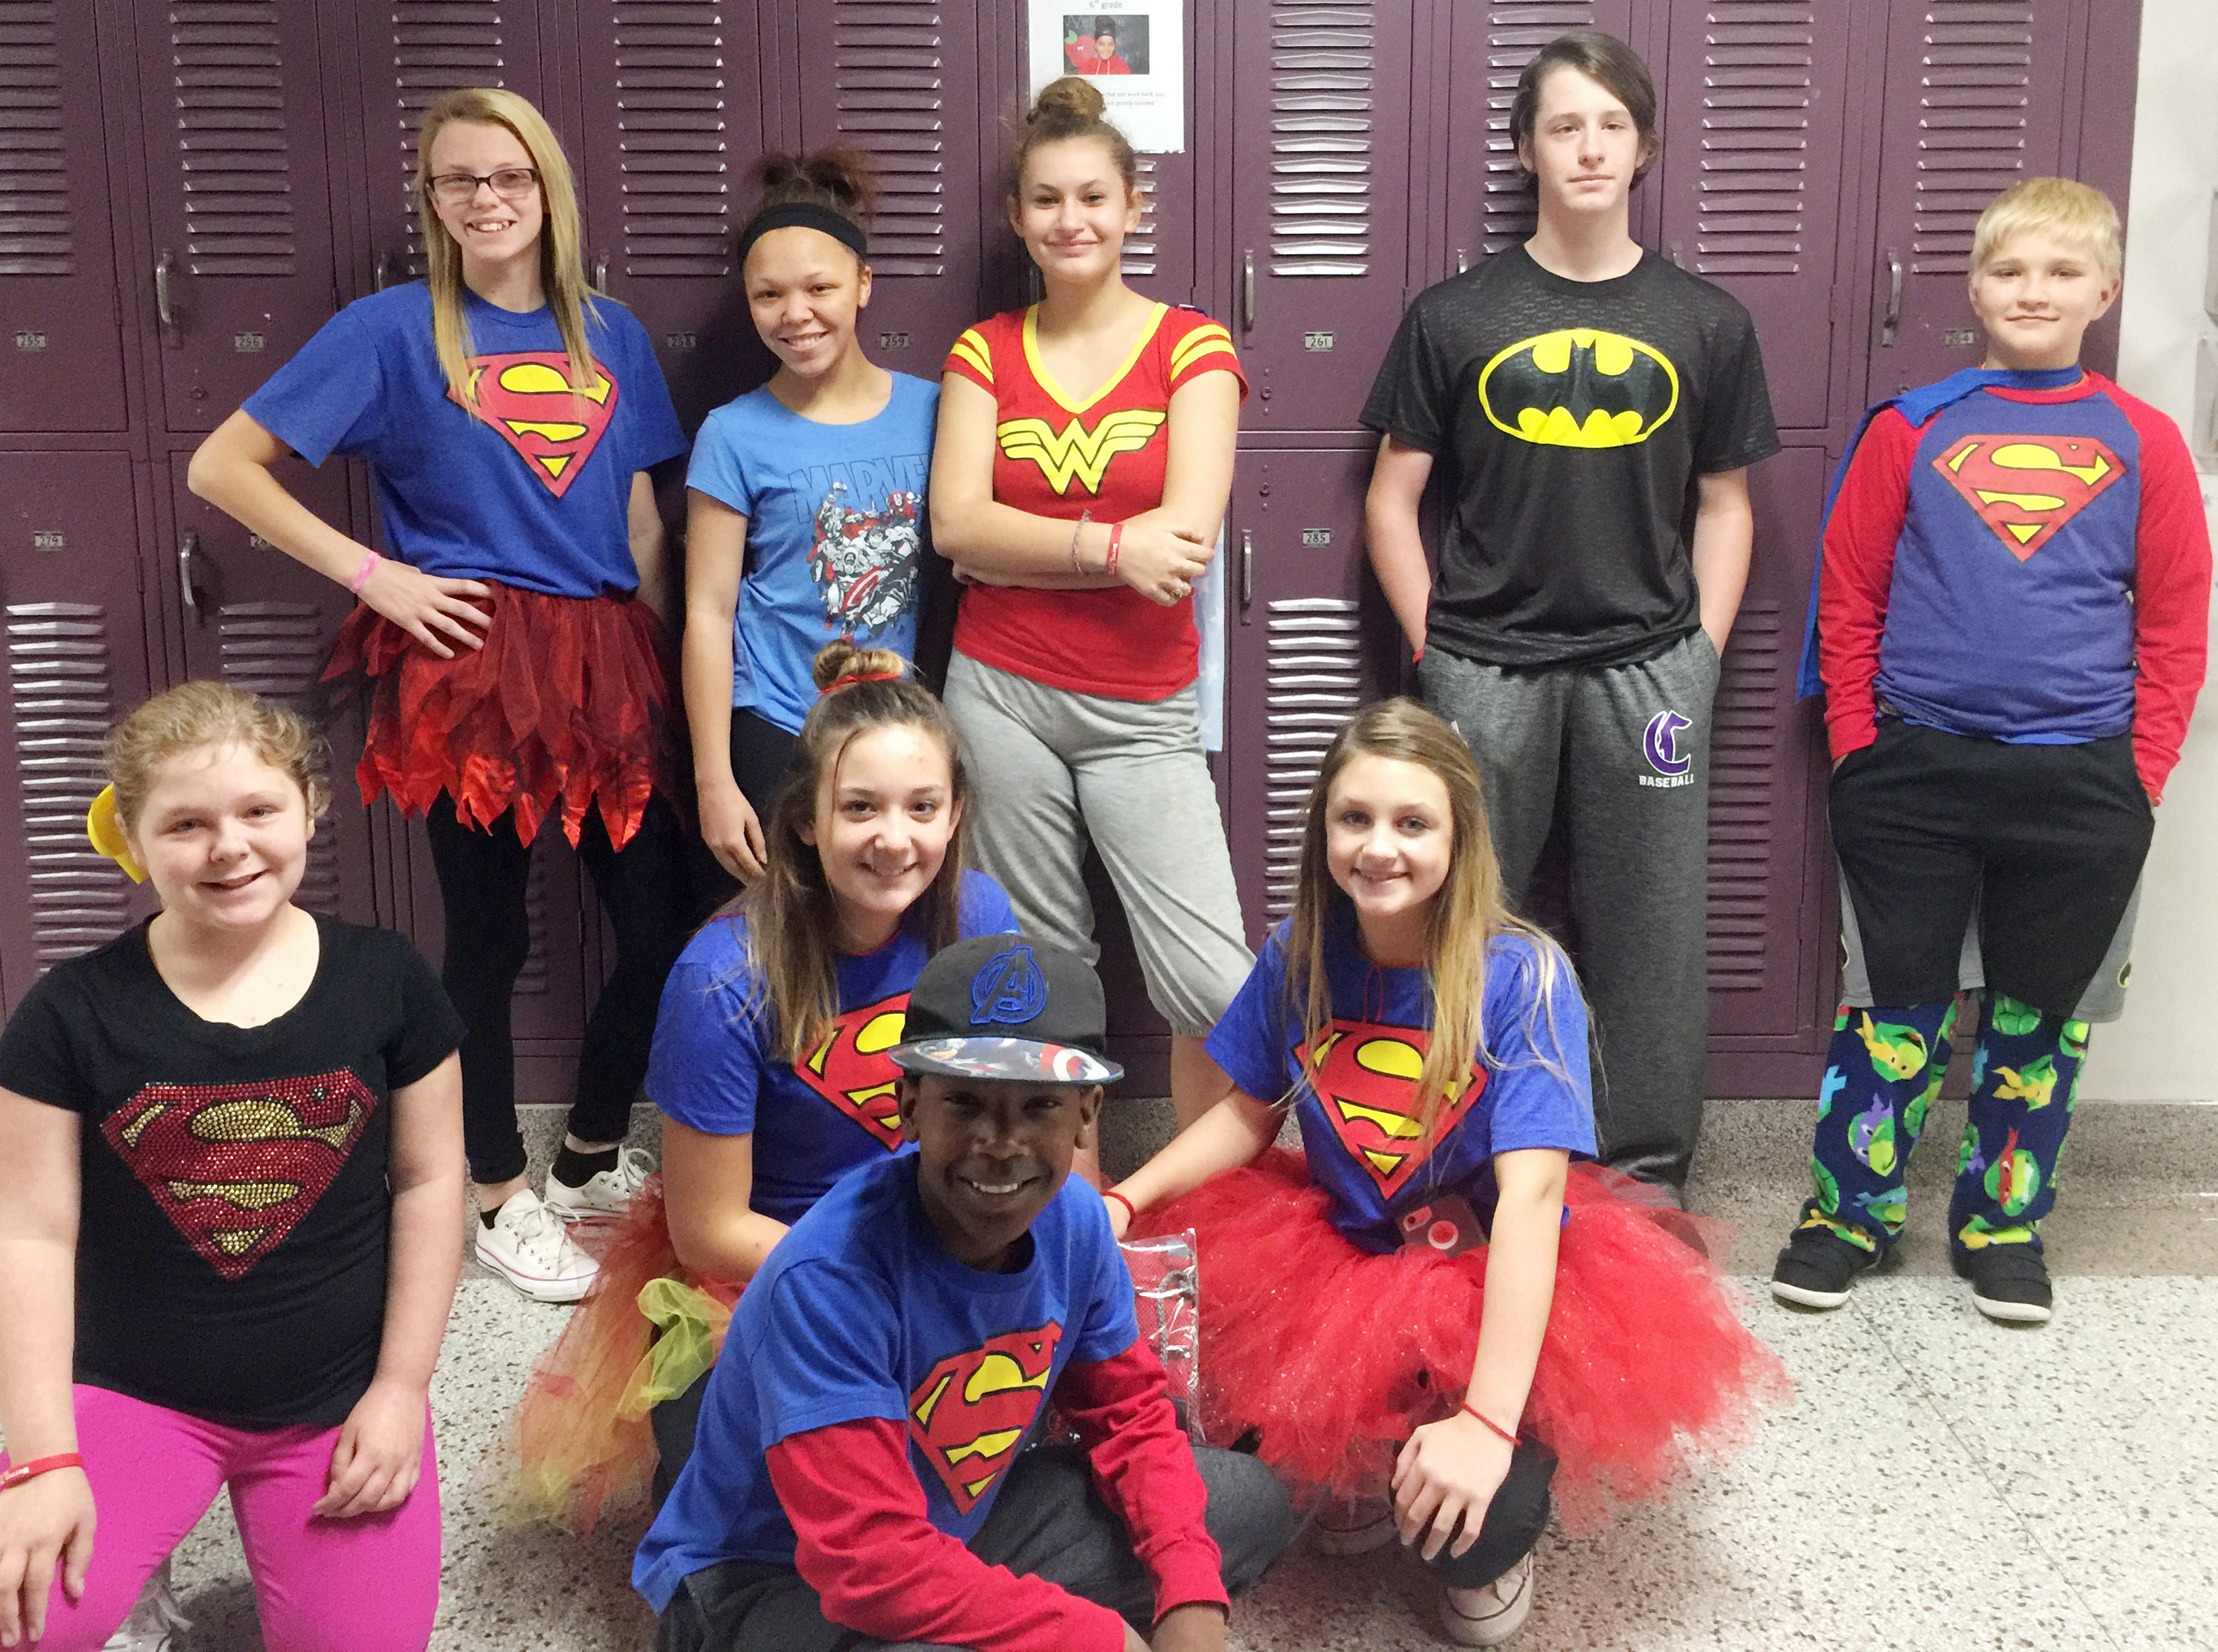 CMS students are celebrating Red Ribbon Week this week with several special events, including dress-up days. Winners for Thursday, which was Real Heroes Don't Do Drugs Day, were, from left, front, sixth-grader Alexis Sharp, seventh-grader Briana Davis, eighth-grader Jadan Furman and seventh-grader Alexis Byers. Back, seventh-graders Jade Wheeler, eighth-graders Kitana Taylor and Christina Miller, seventh-grader Seth Hash and sixth-grader Dakota Tungate.